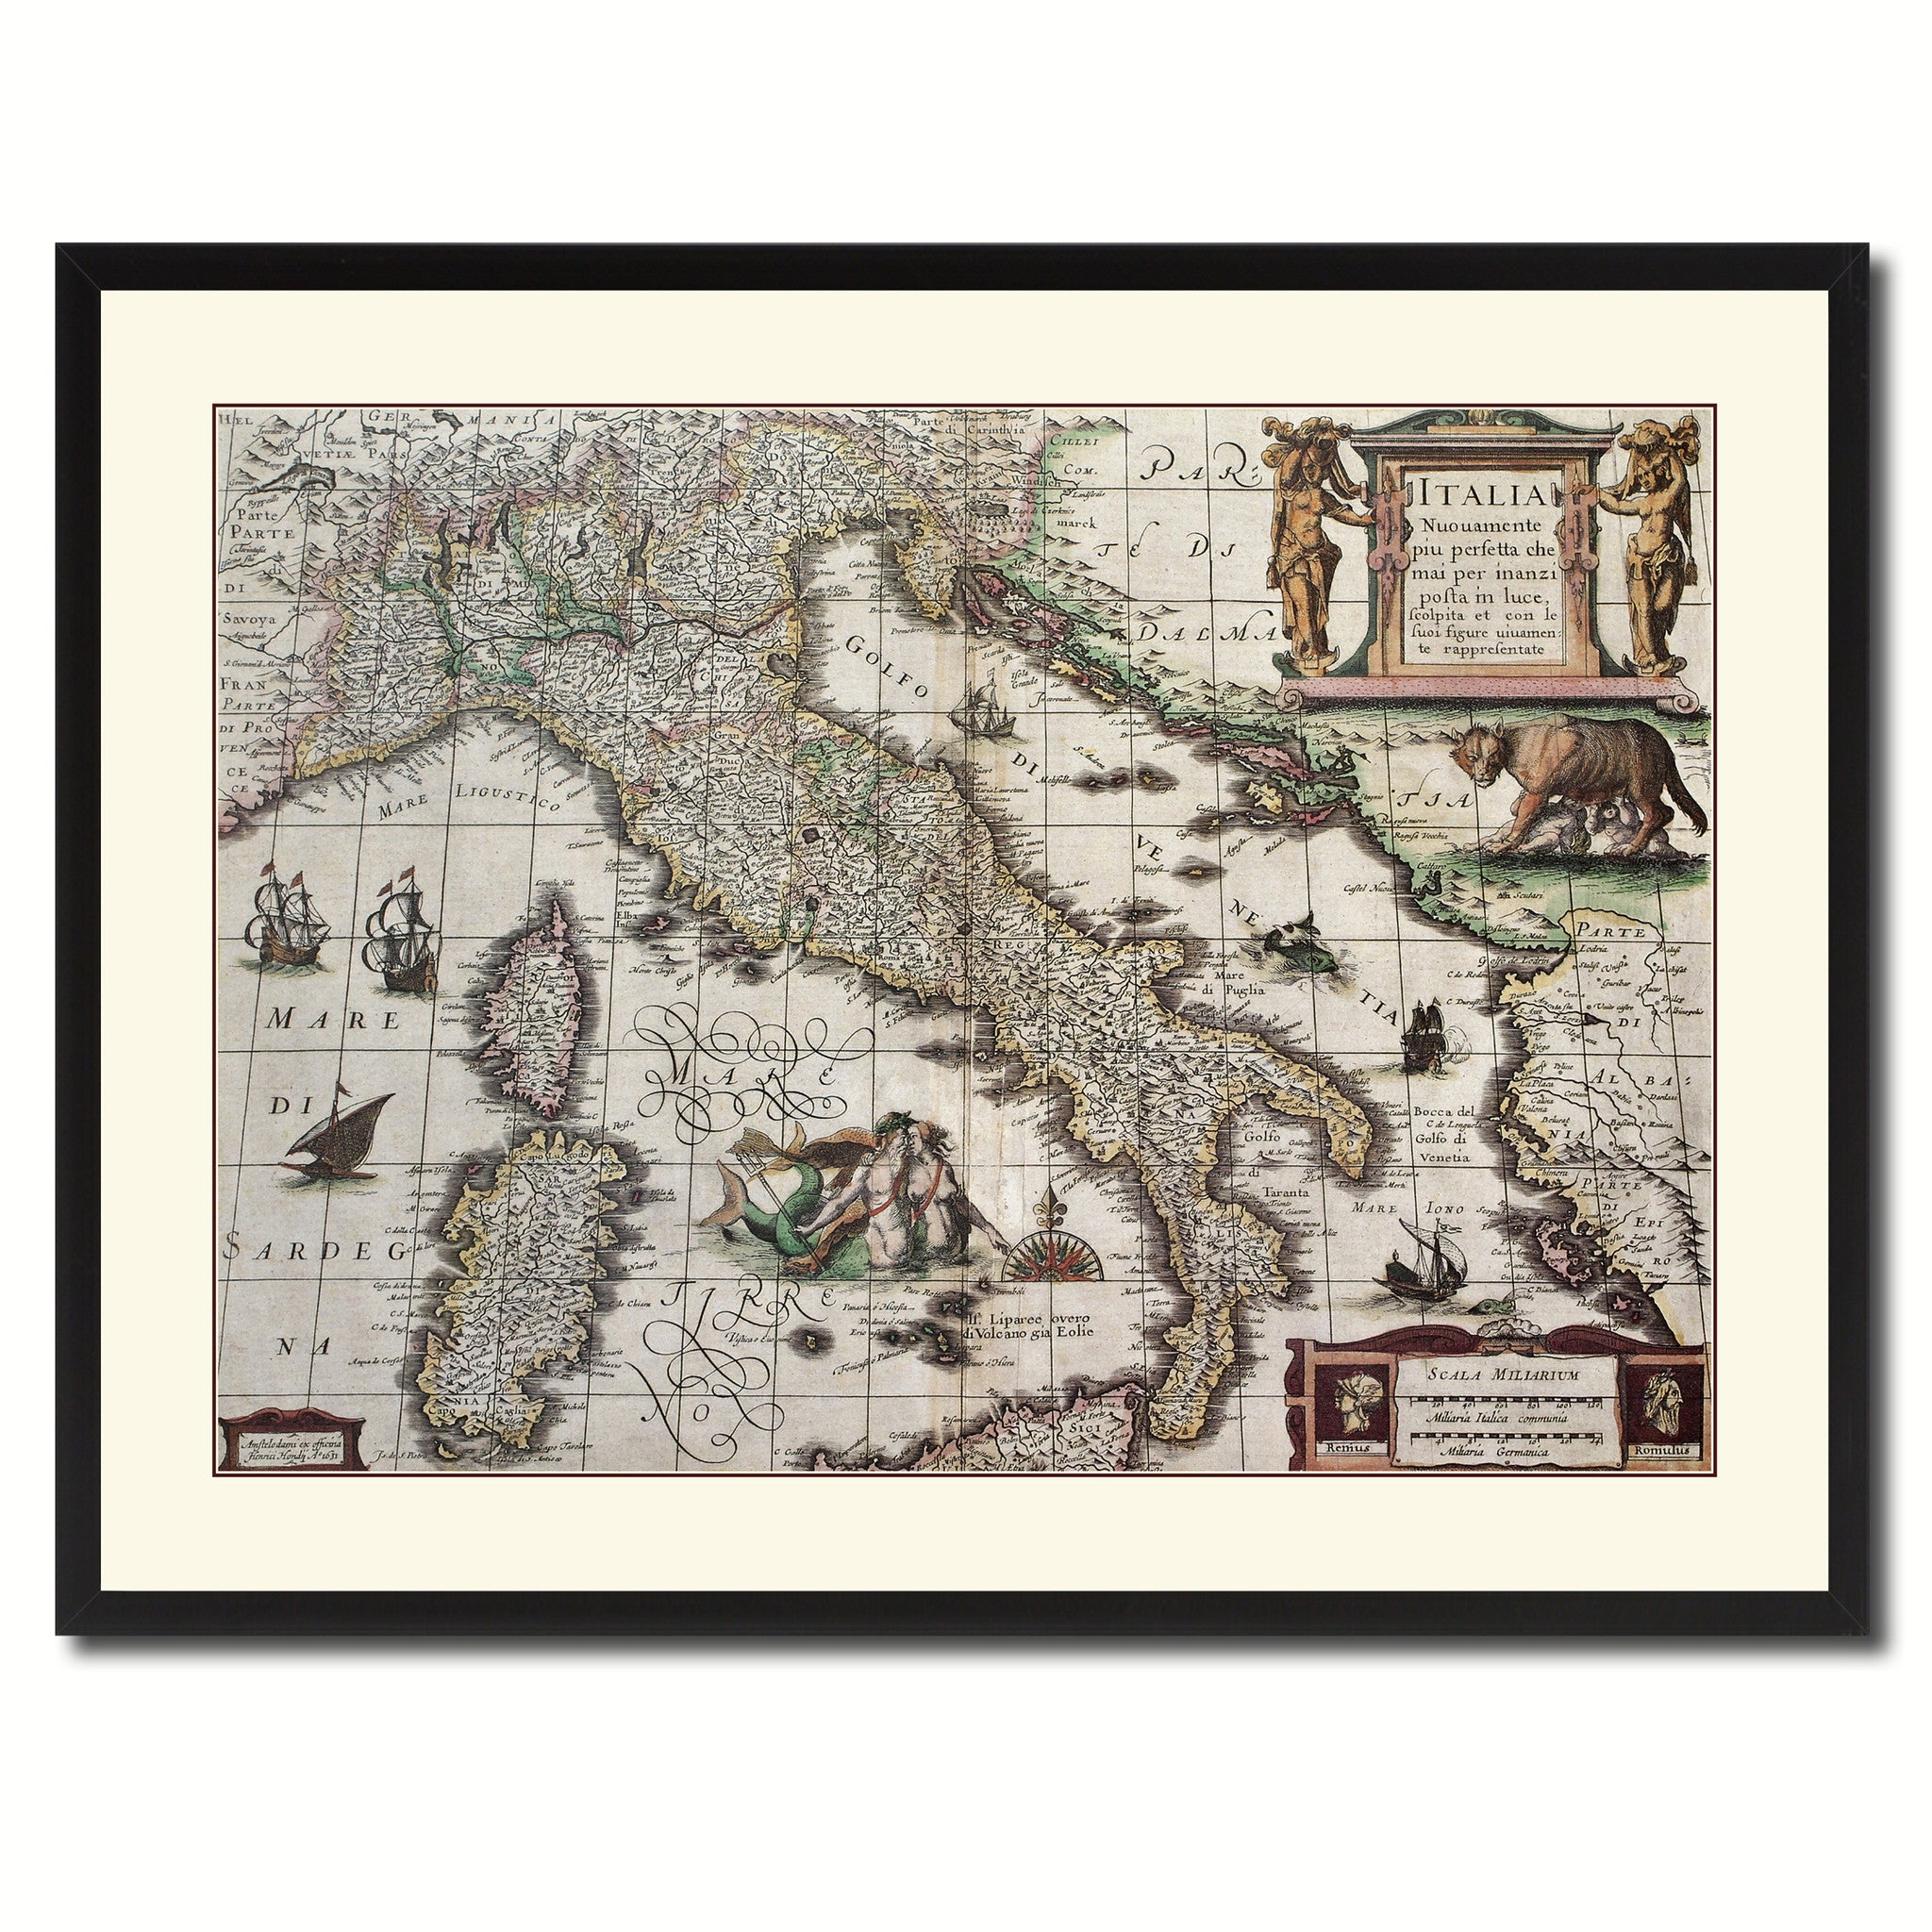 Italy vintage antique map wall art home decor gift ideas for Prints for home decor